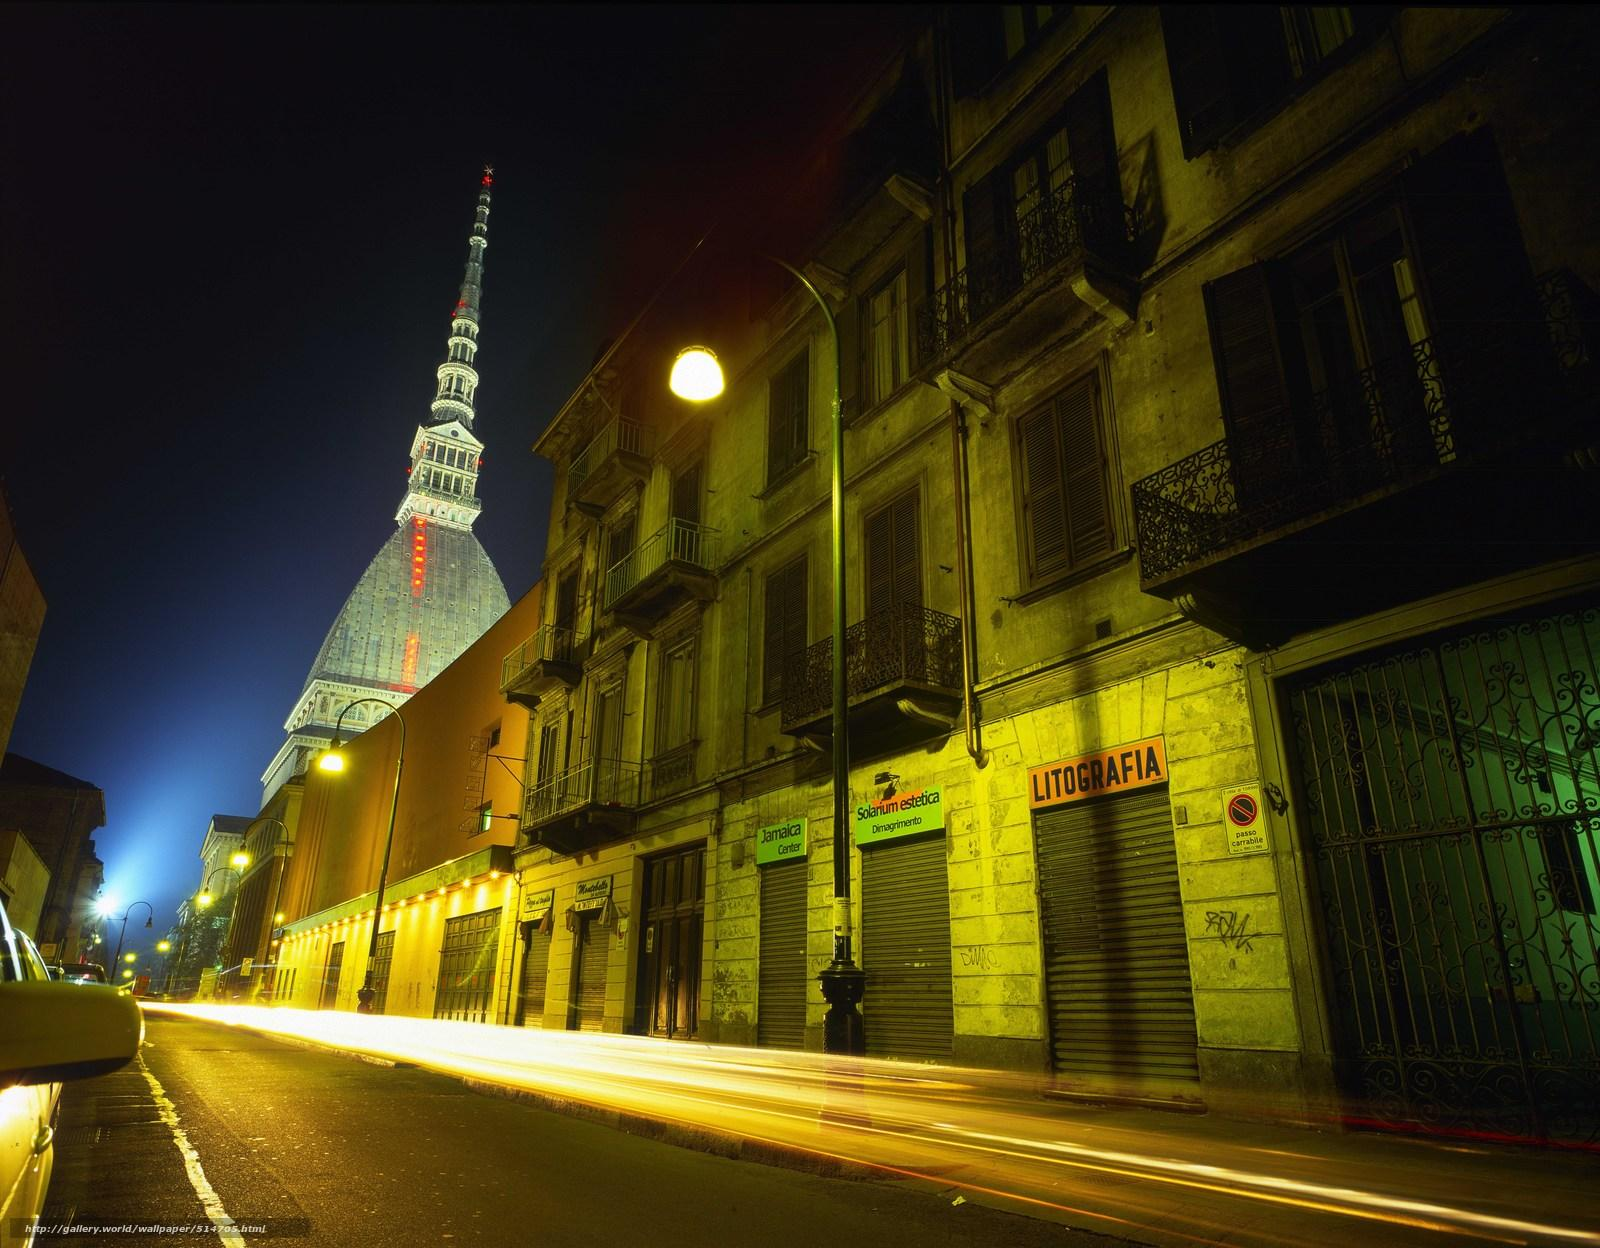 Download wallpapers building, Turin, lights free desktop wallpapers in